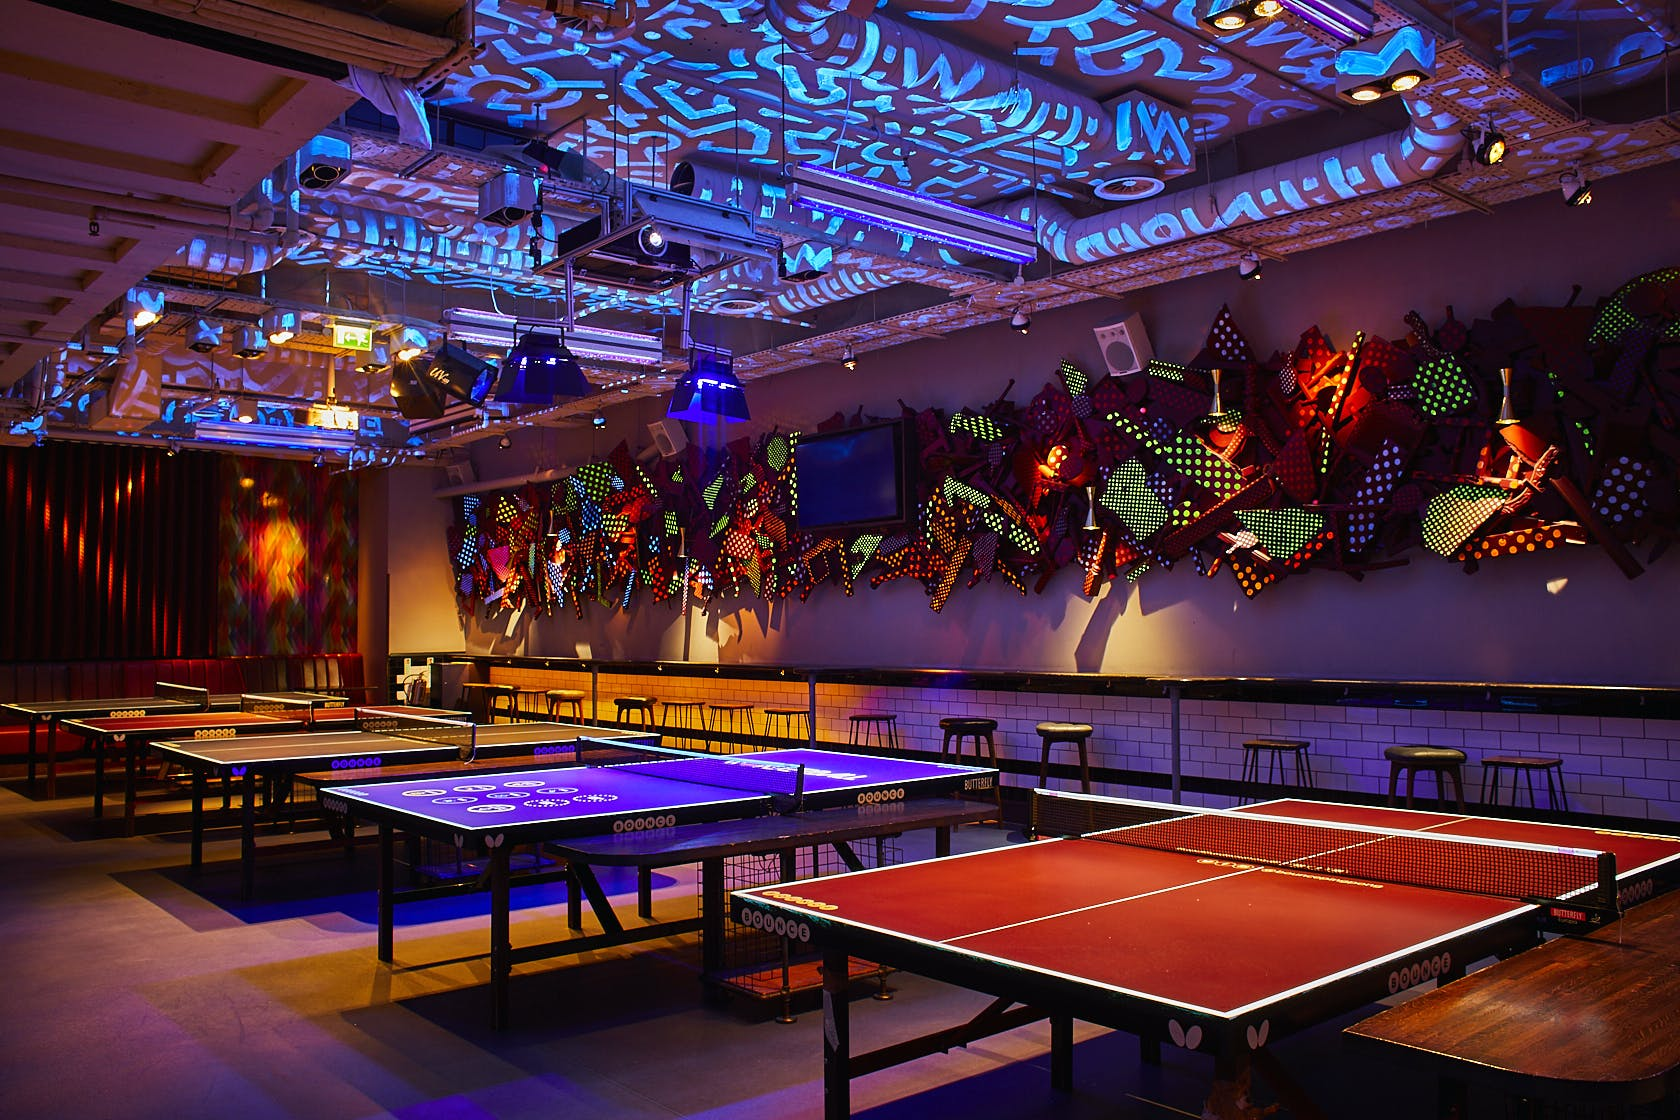 Bounce ping pong tables